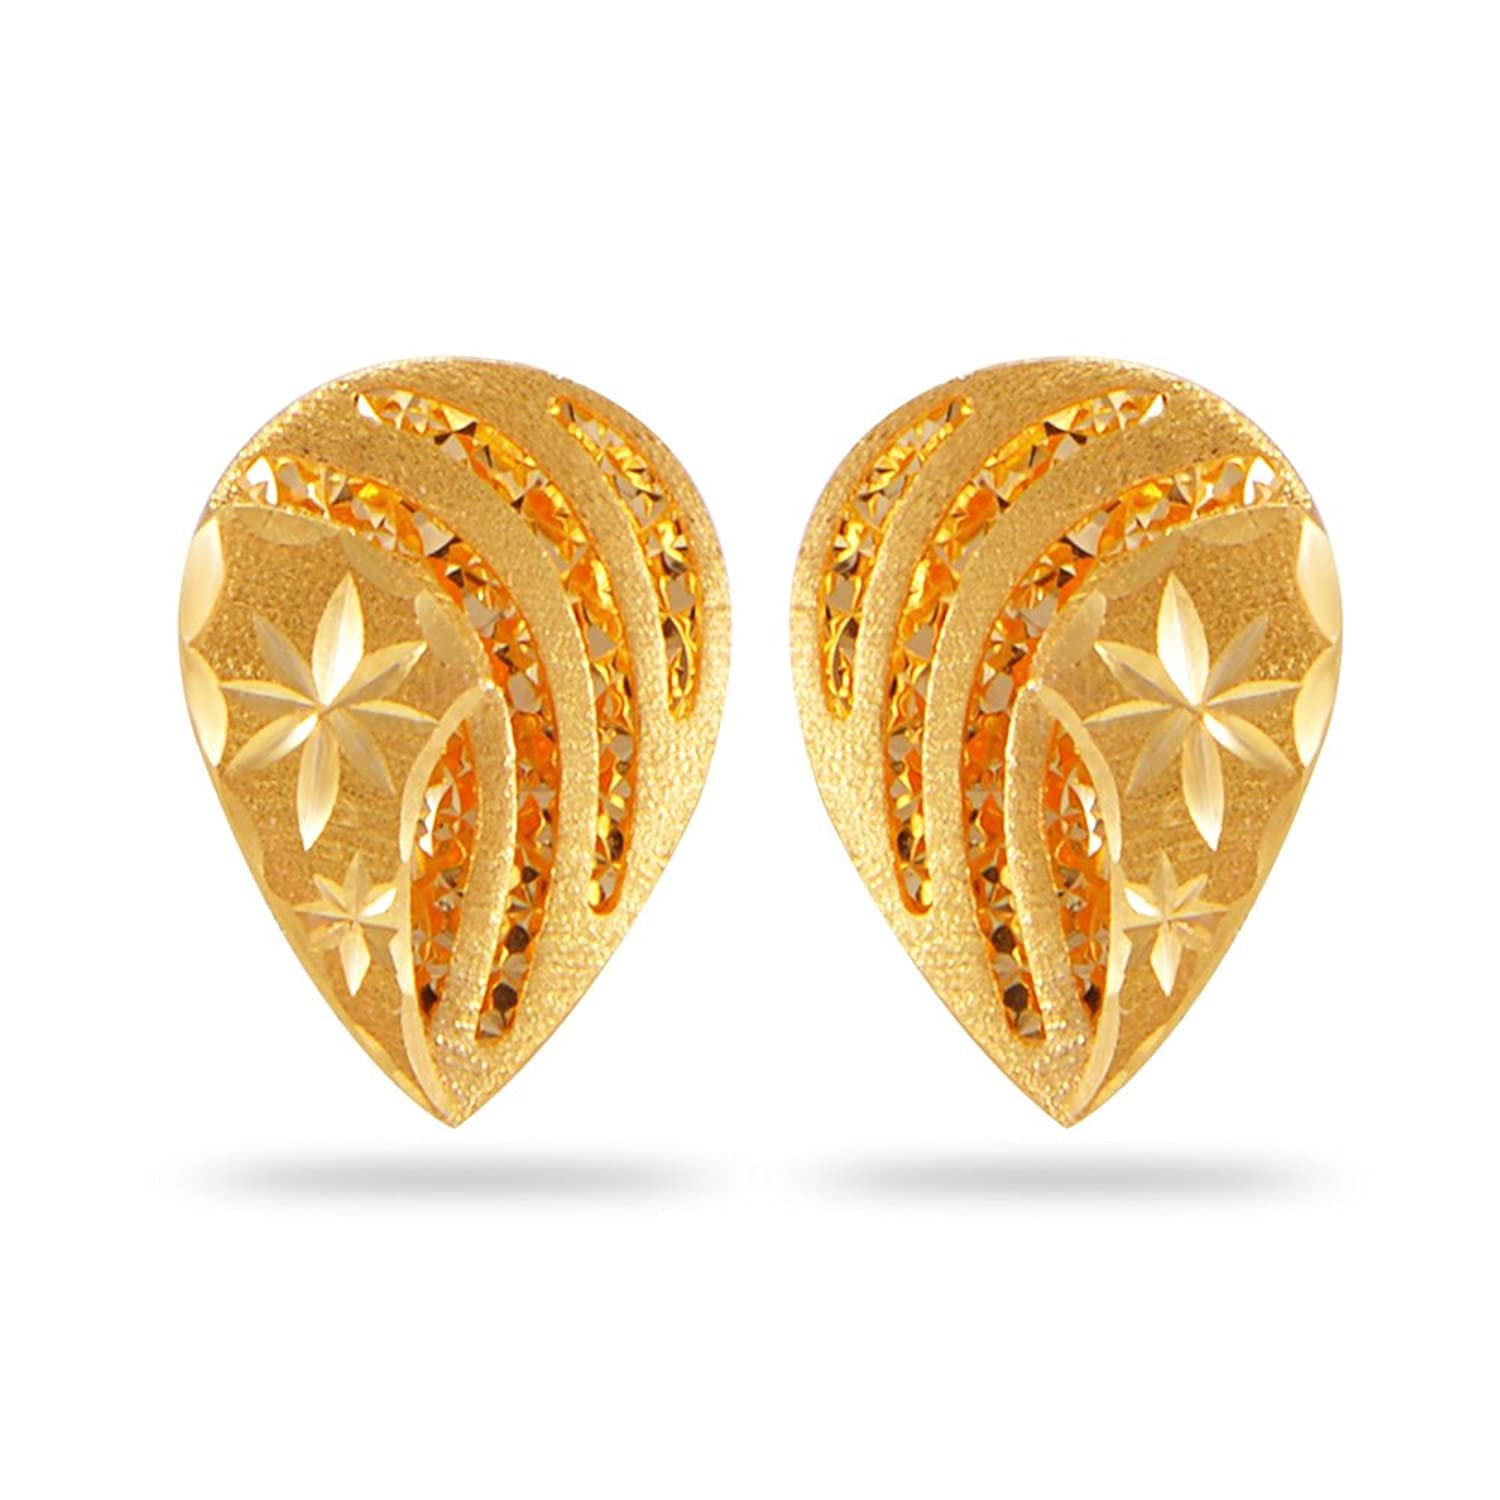 jhumka drop gold stud south earrings pin chand bali set indian plated jhumki fashion